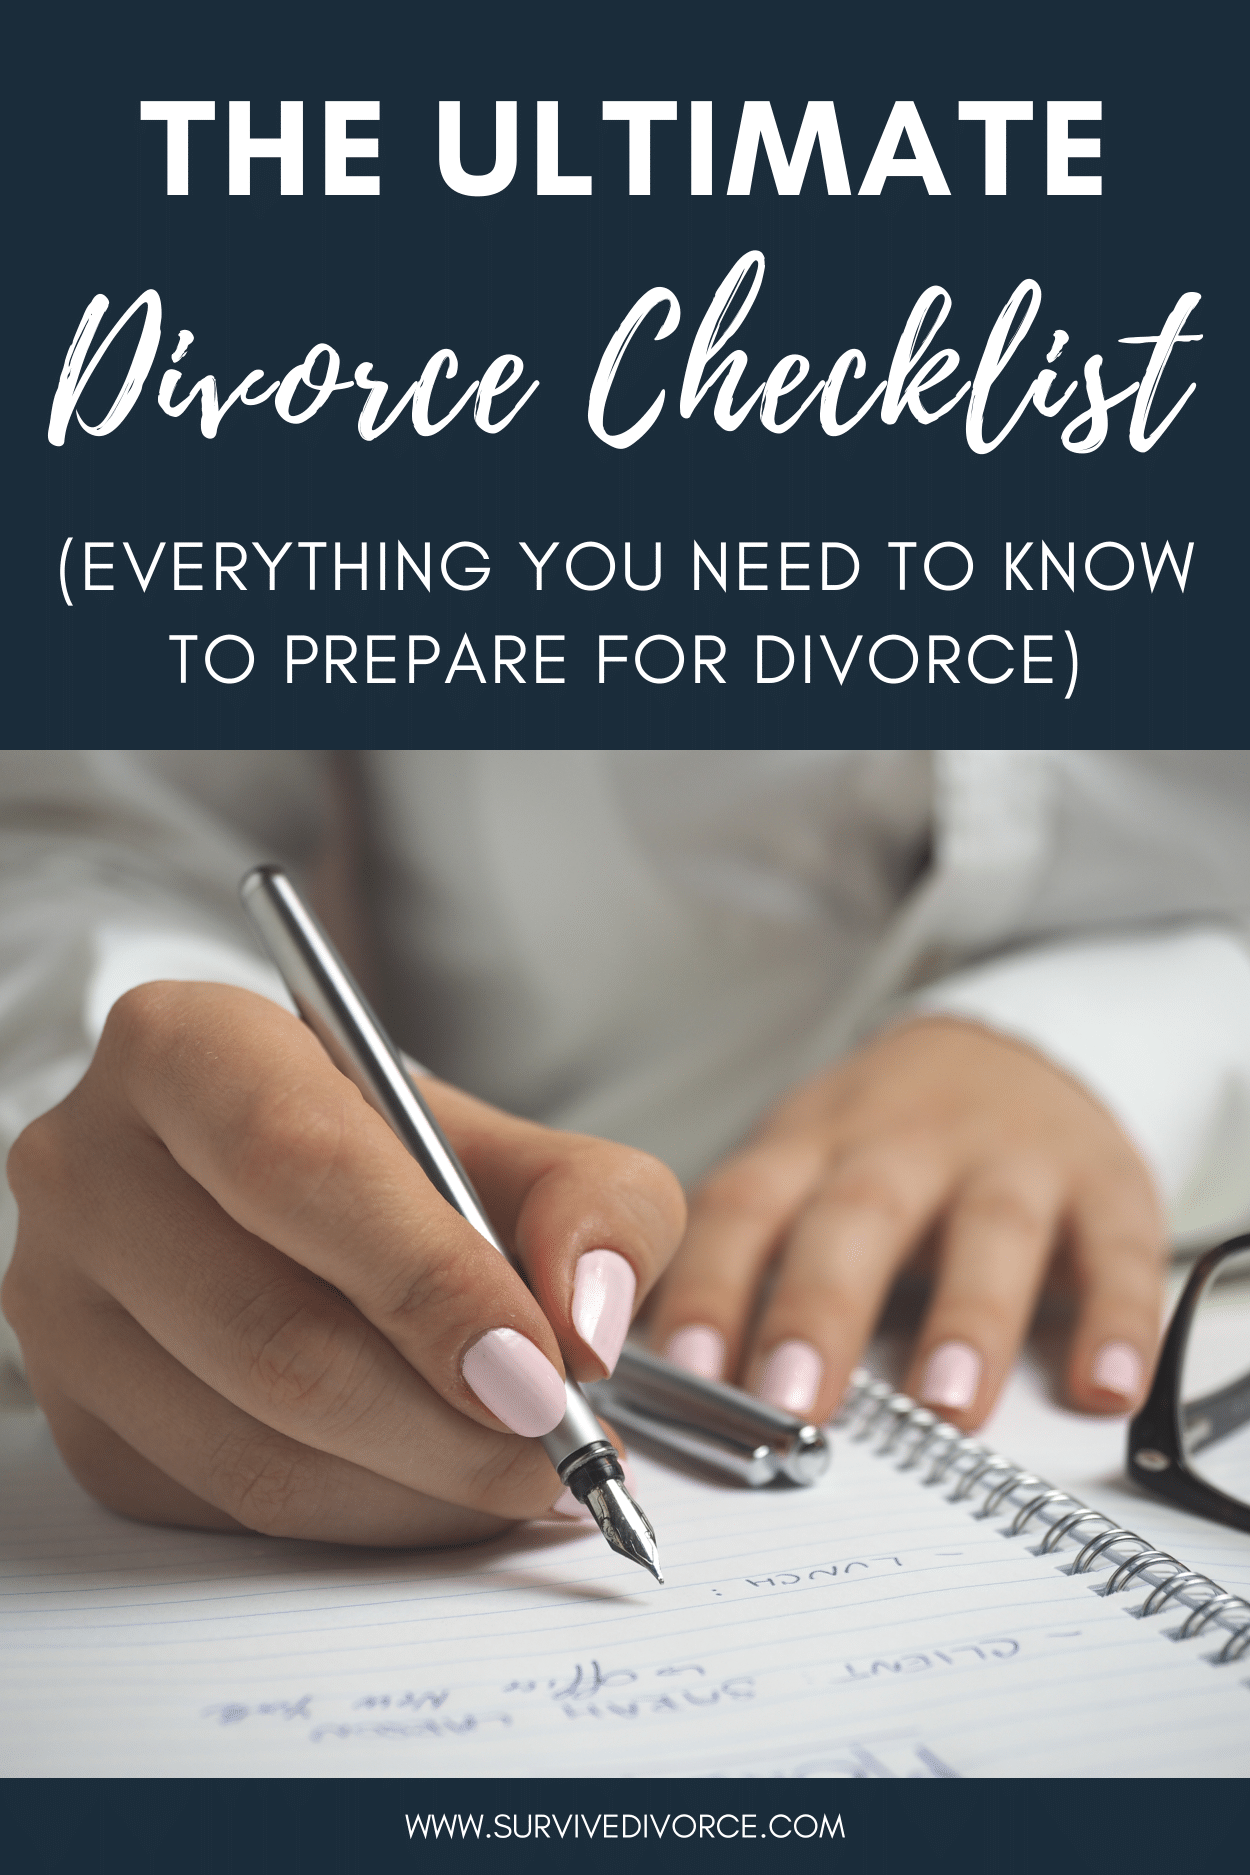 The Ultimate Divorce Checklist for [year] (How to Prepare